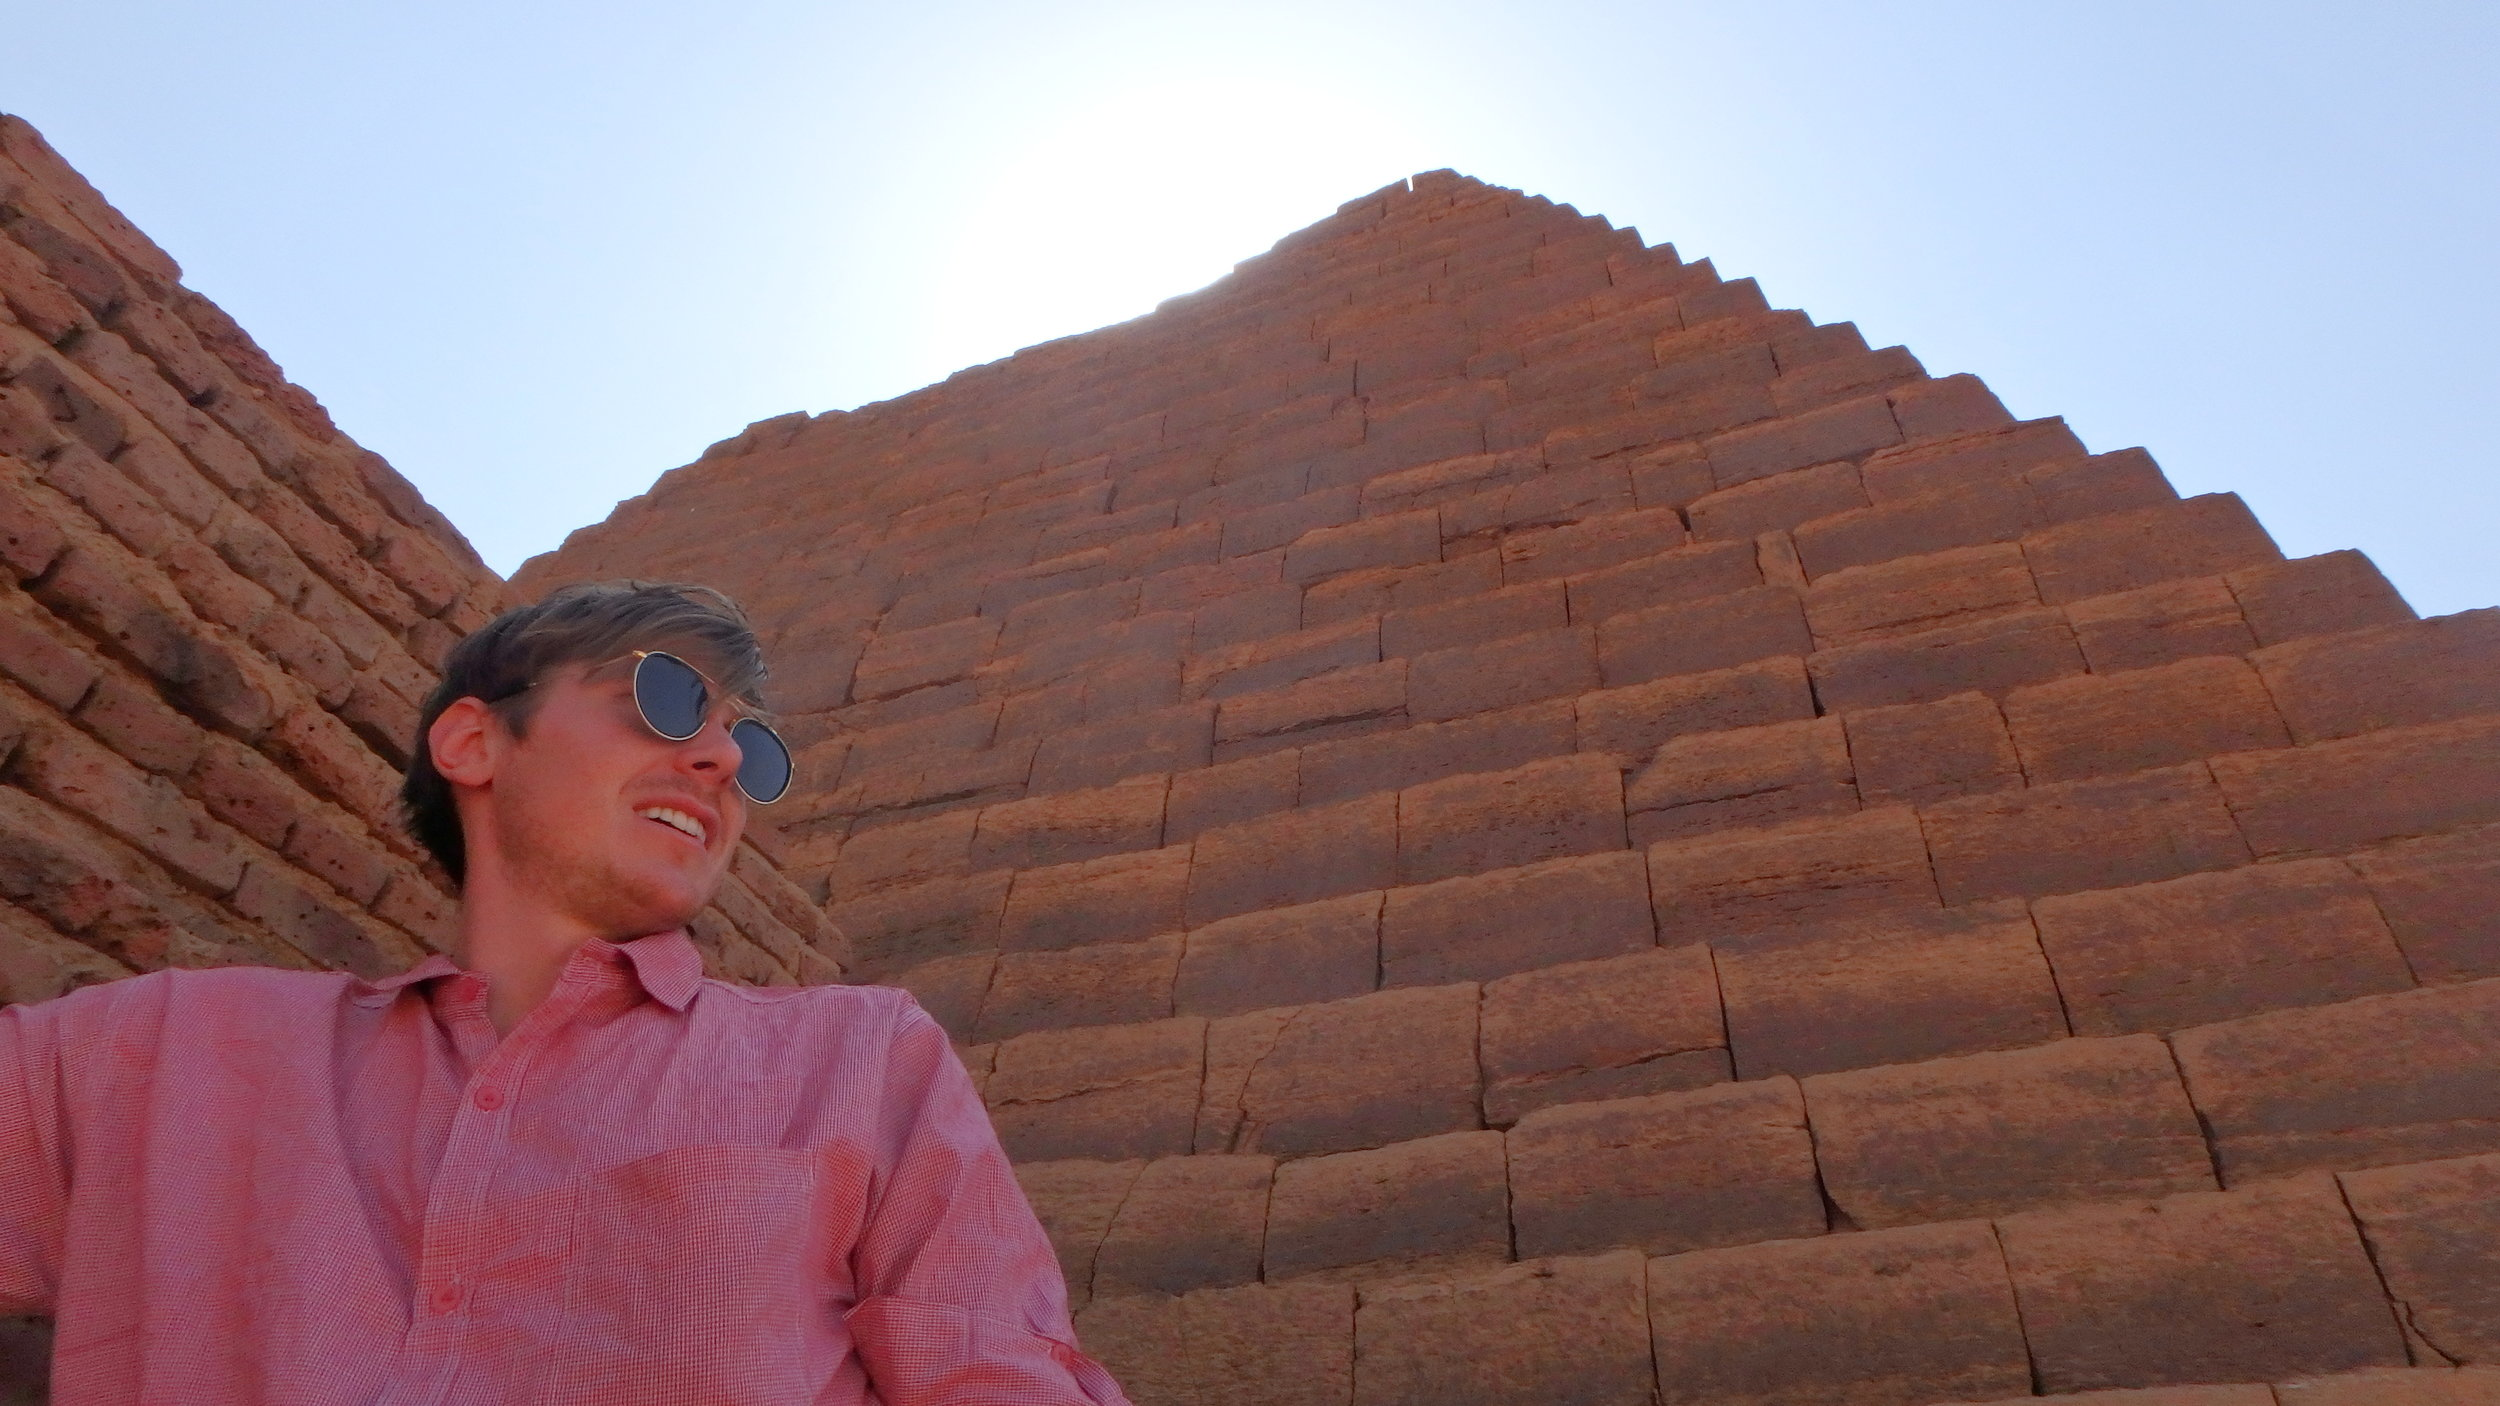 But pyramids make you look cool.